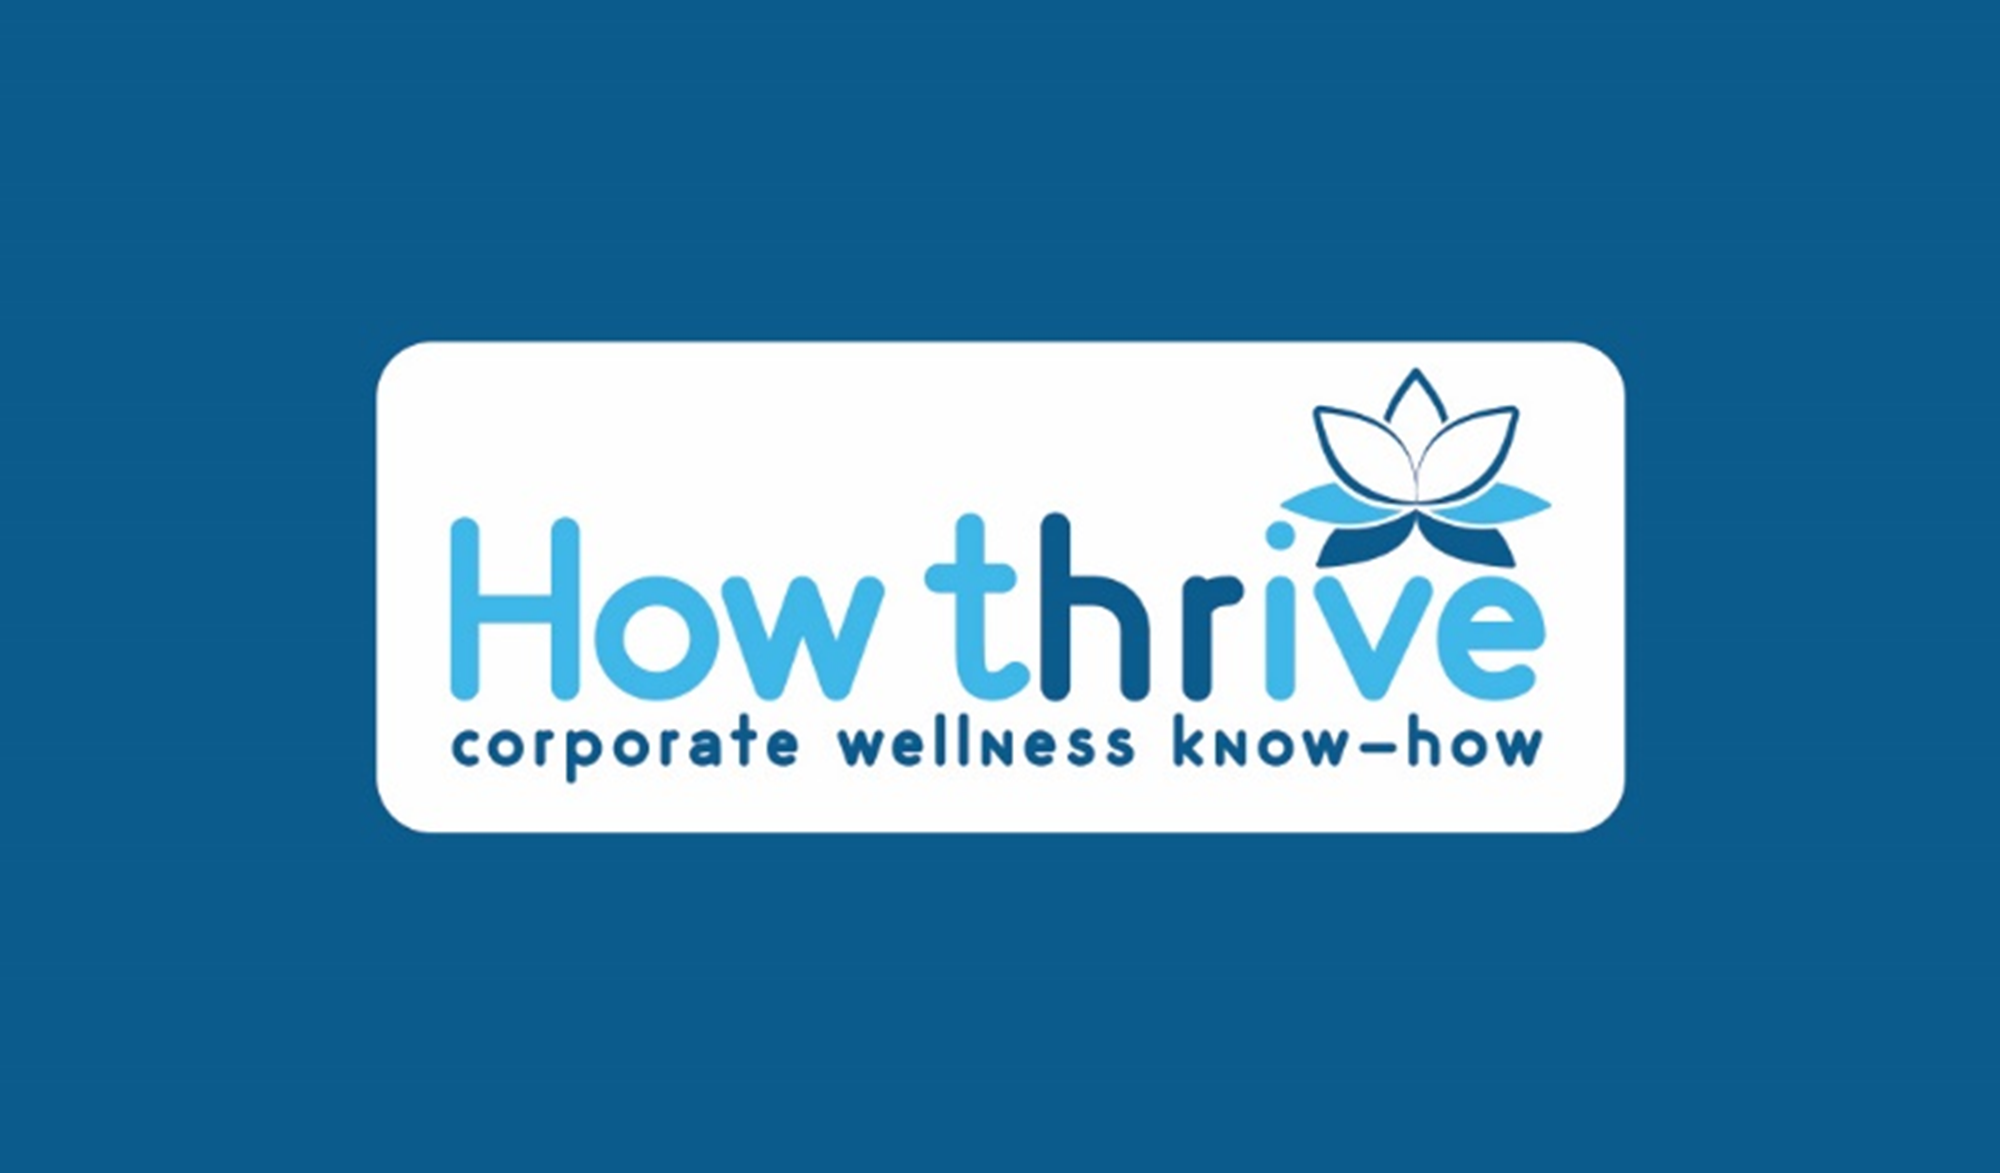 How thrive Corporate wellness know-how